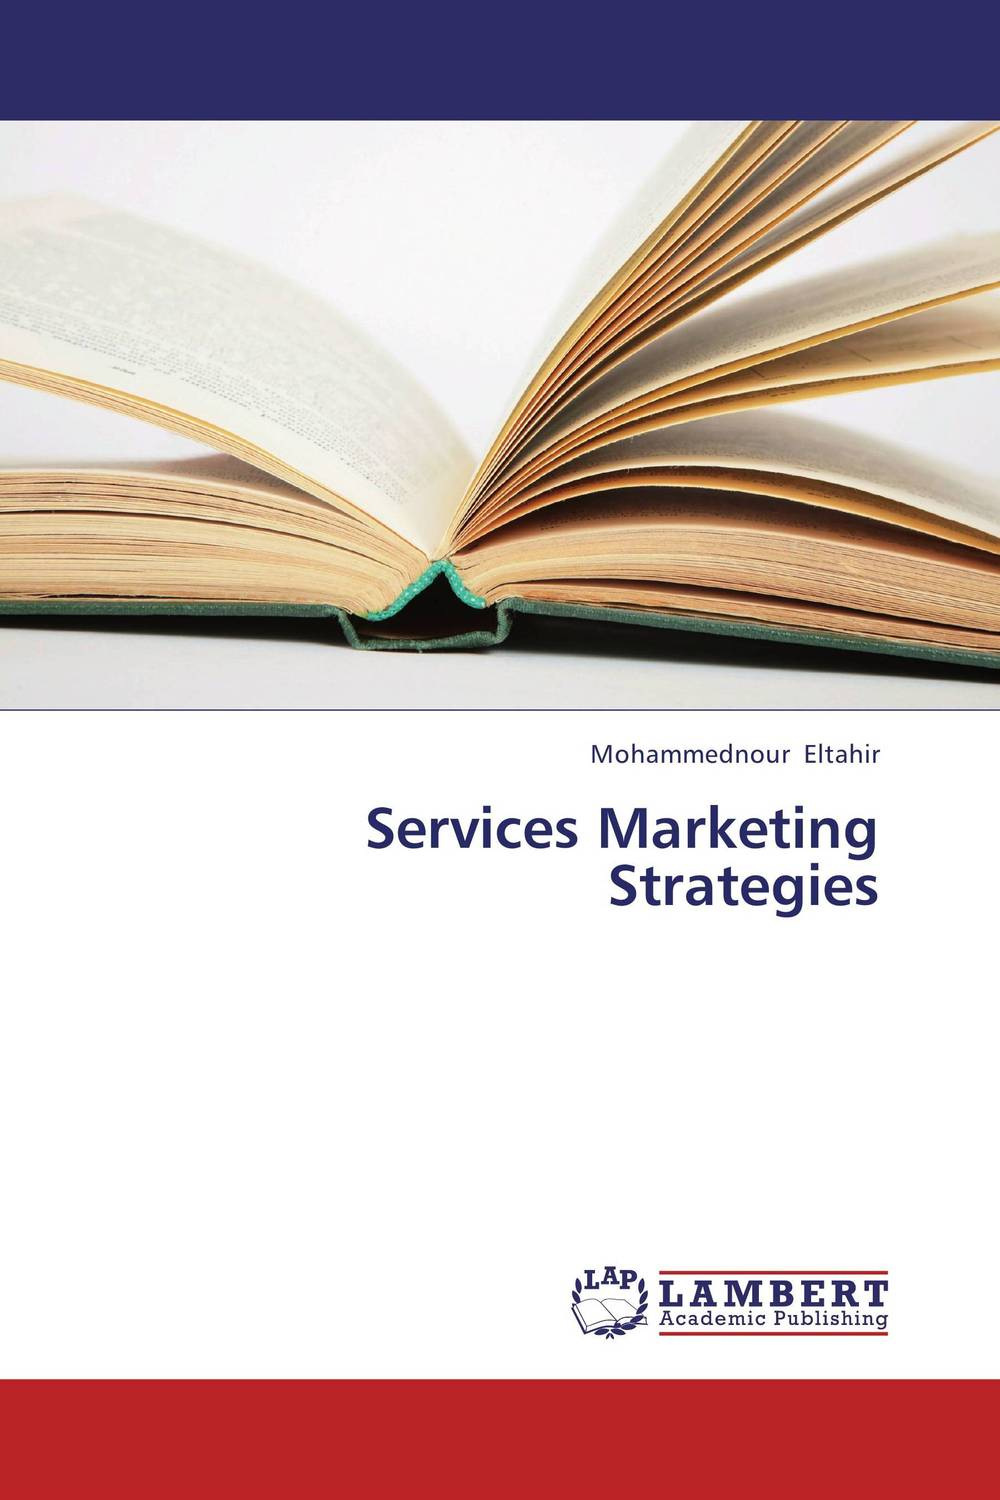 Services Marketing Strategies